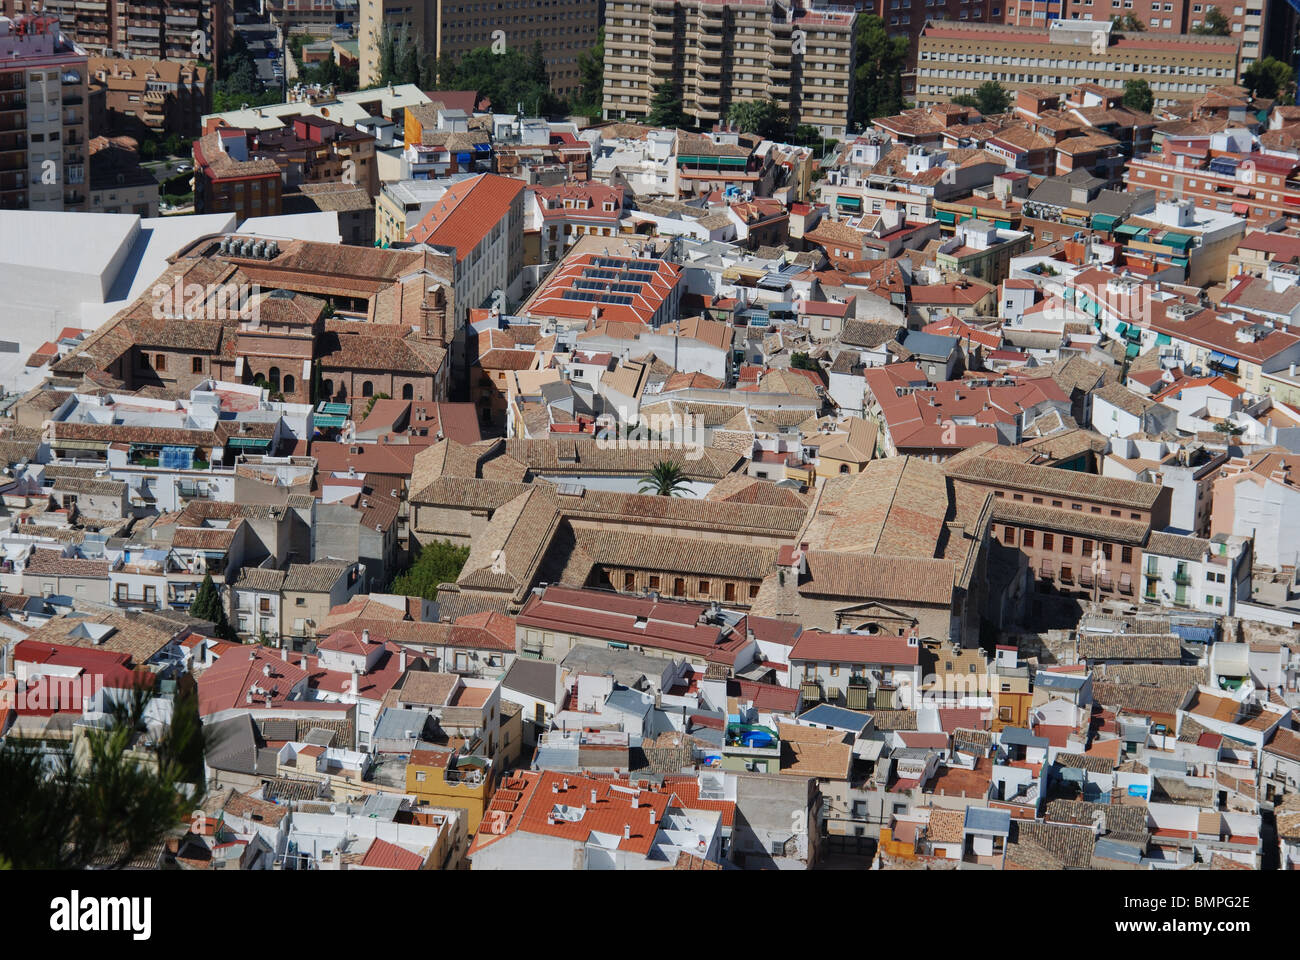 View over city rooftops, Jaen, Jaen Province, Andalucia, Spain, Western Europe. - Stock Image